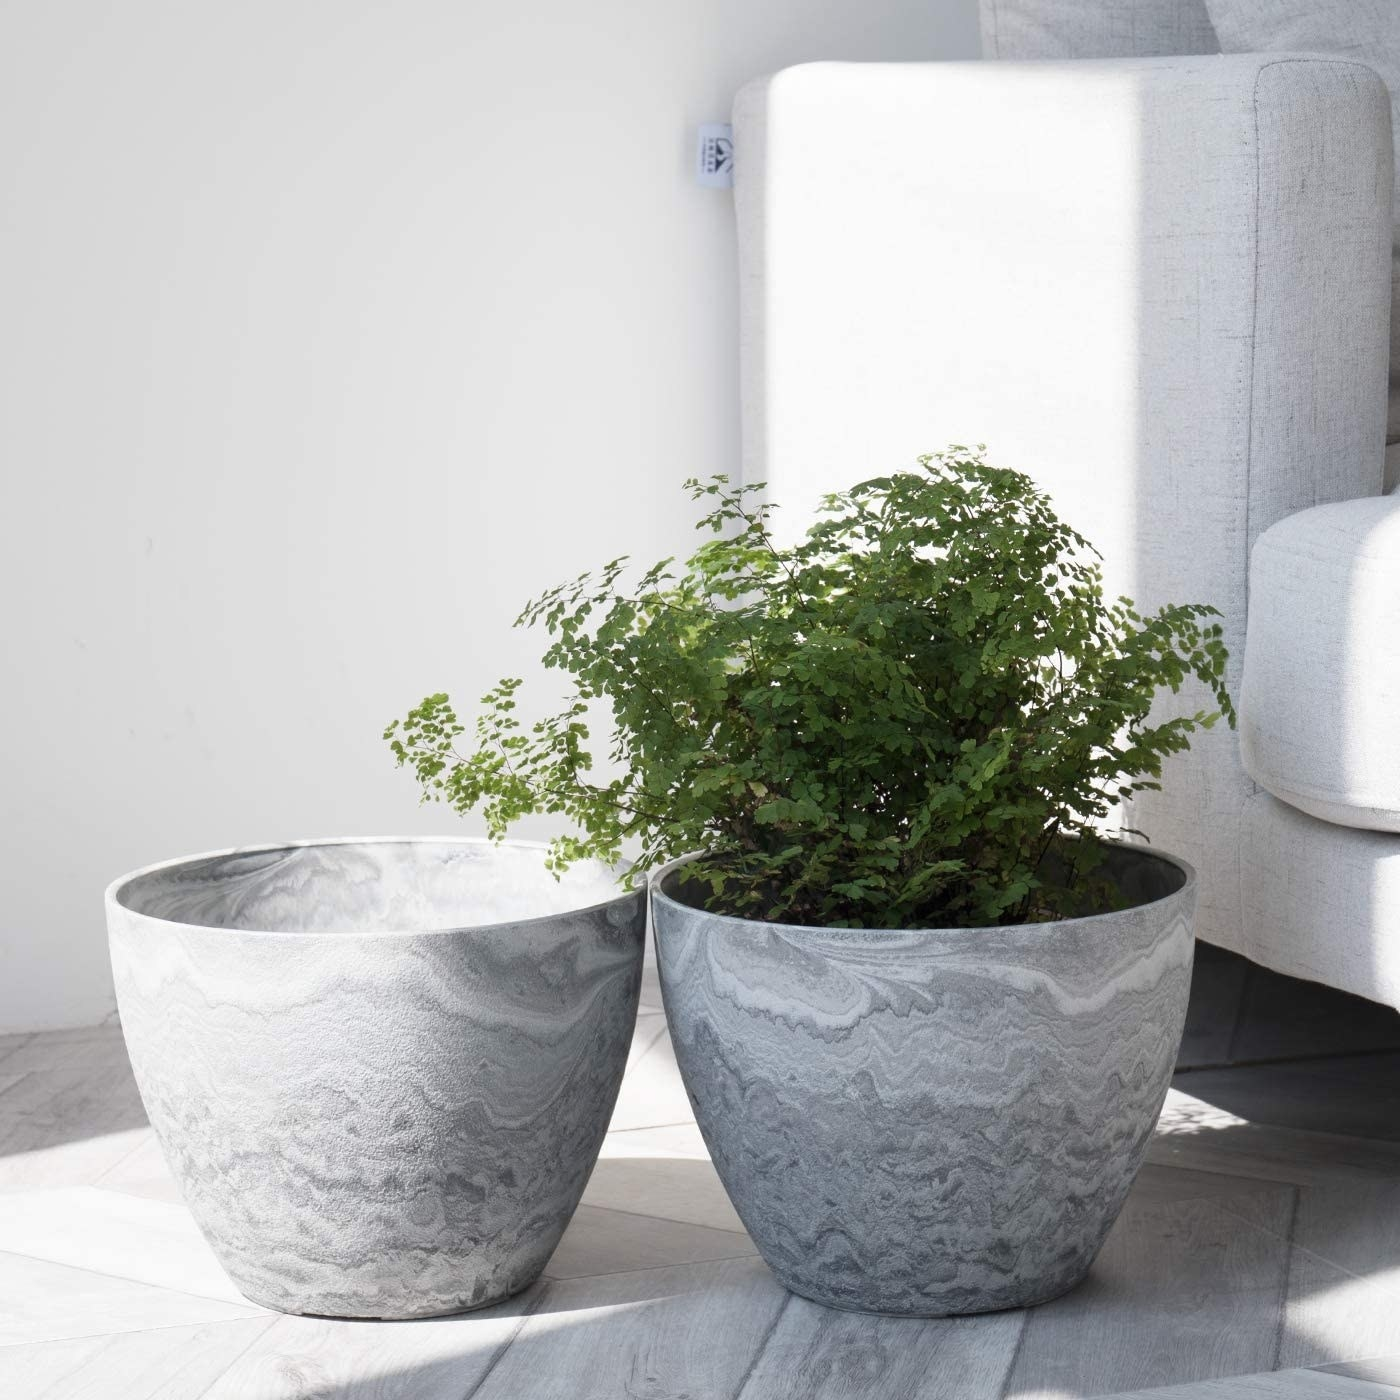 two gray planters with plants in them